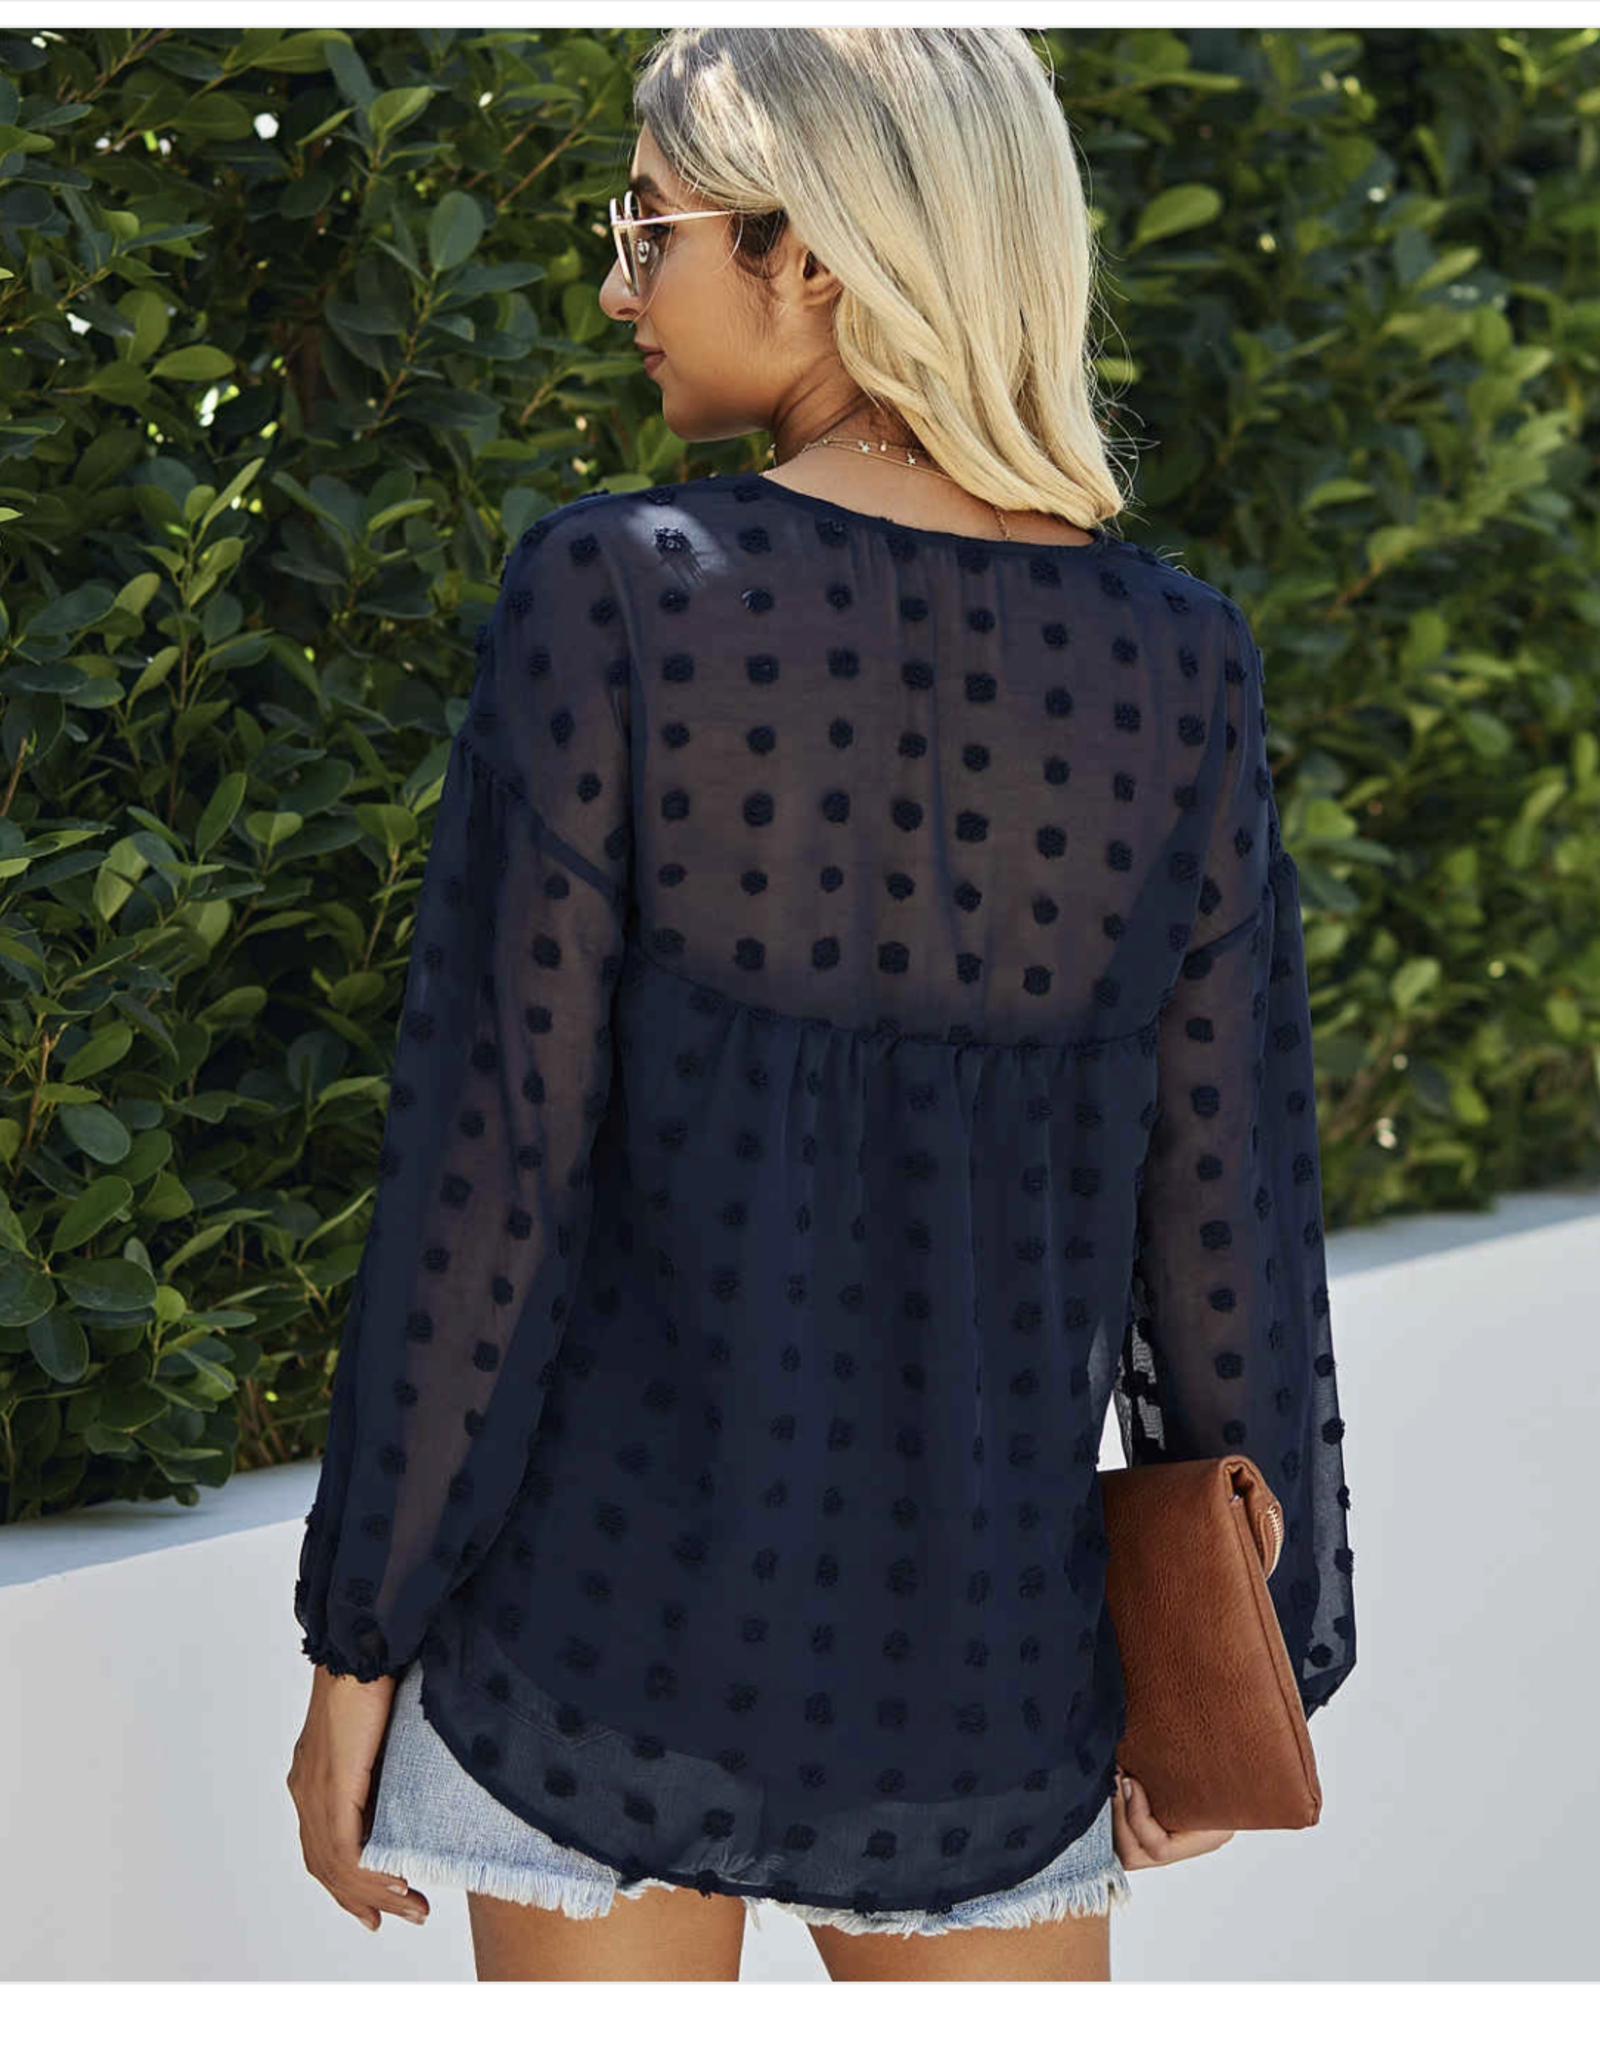 ePretty Navy Sheer Top with navy dots